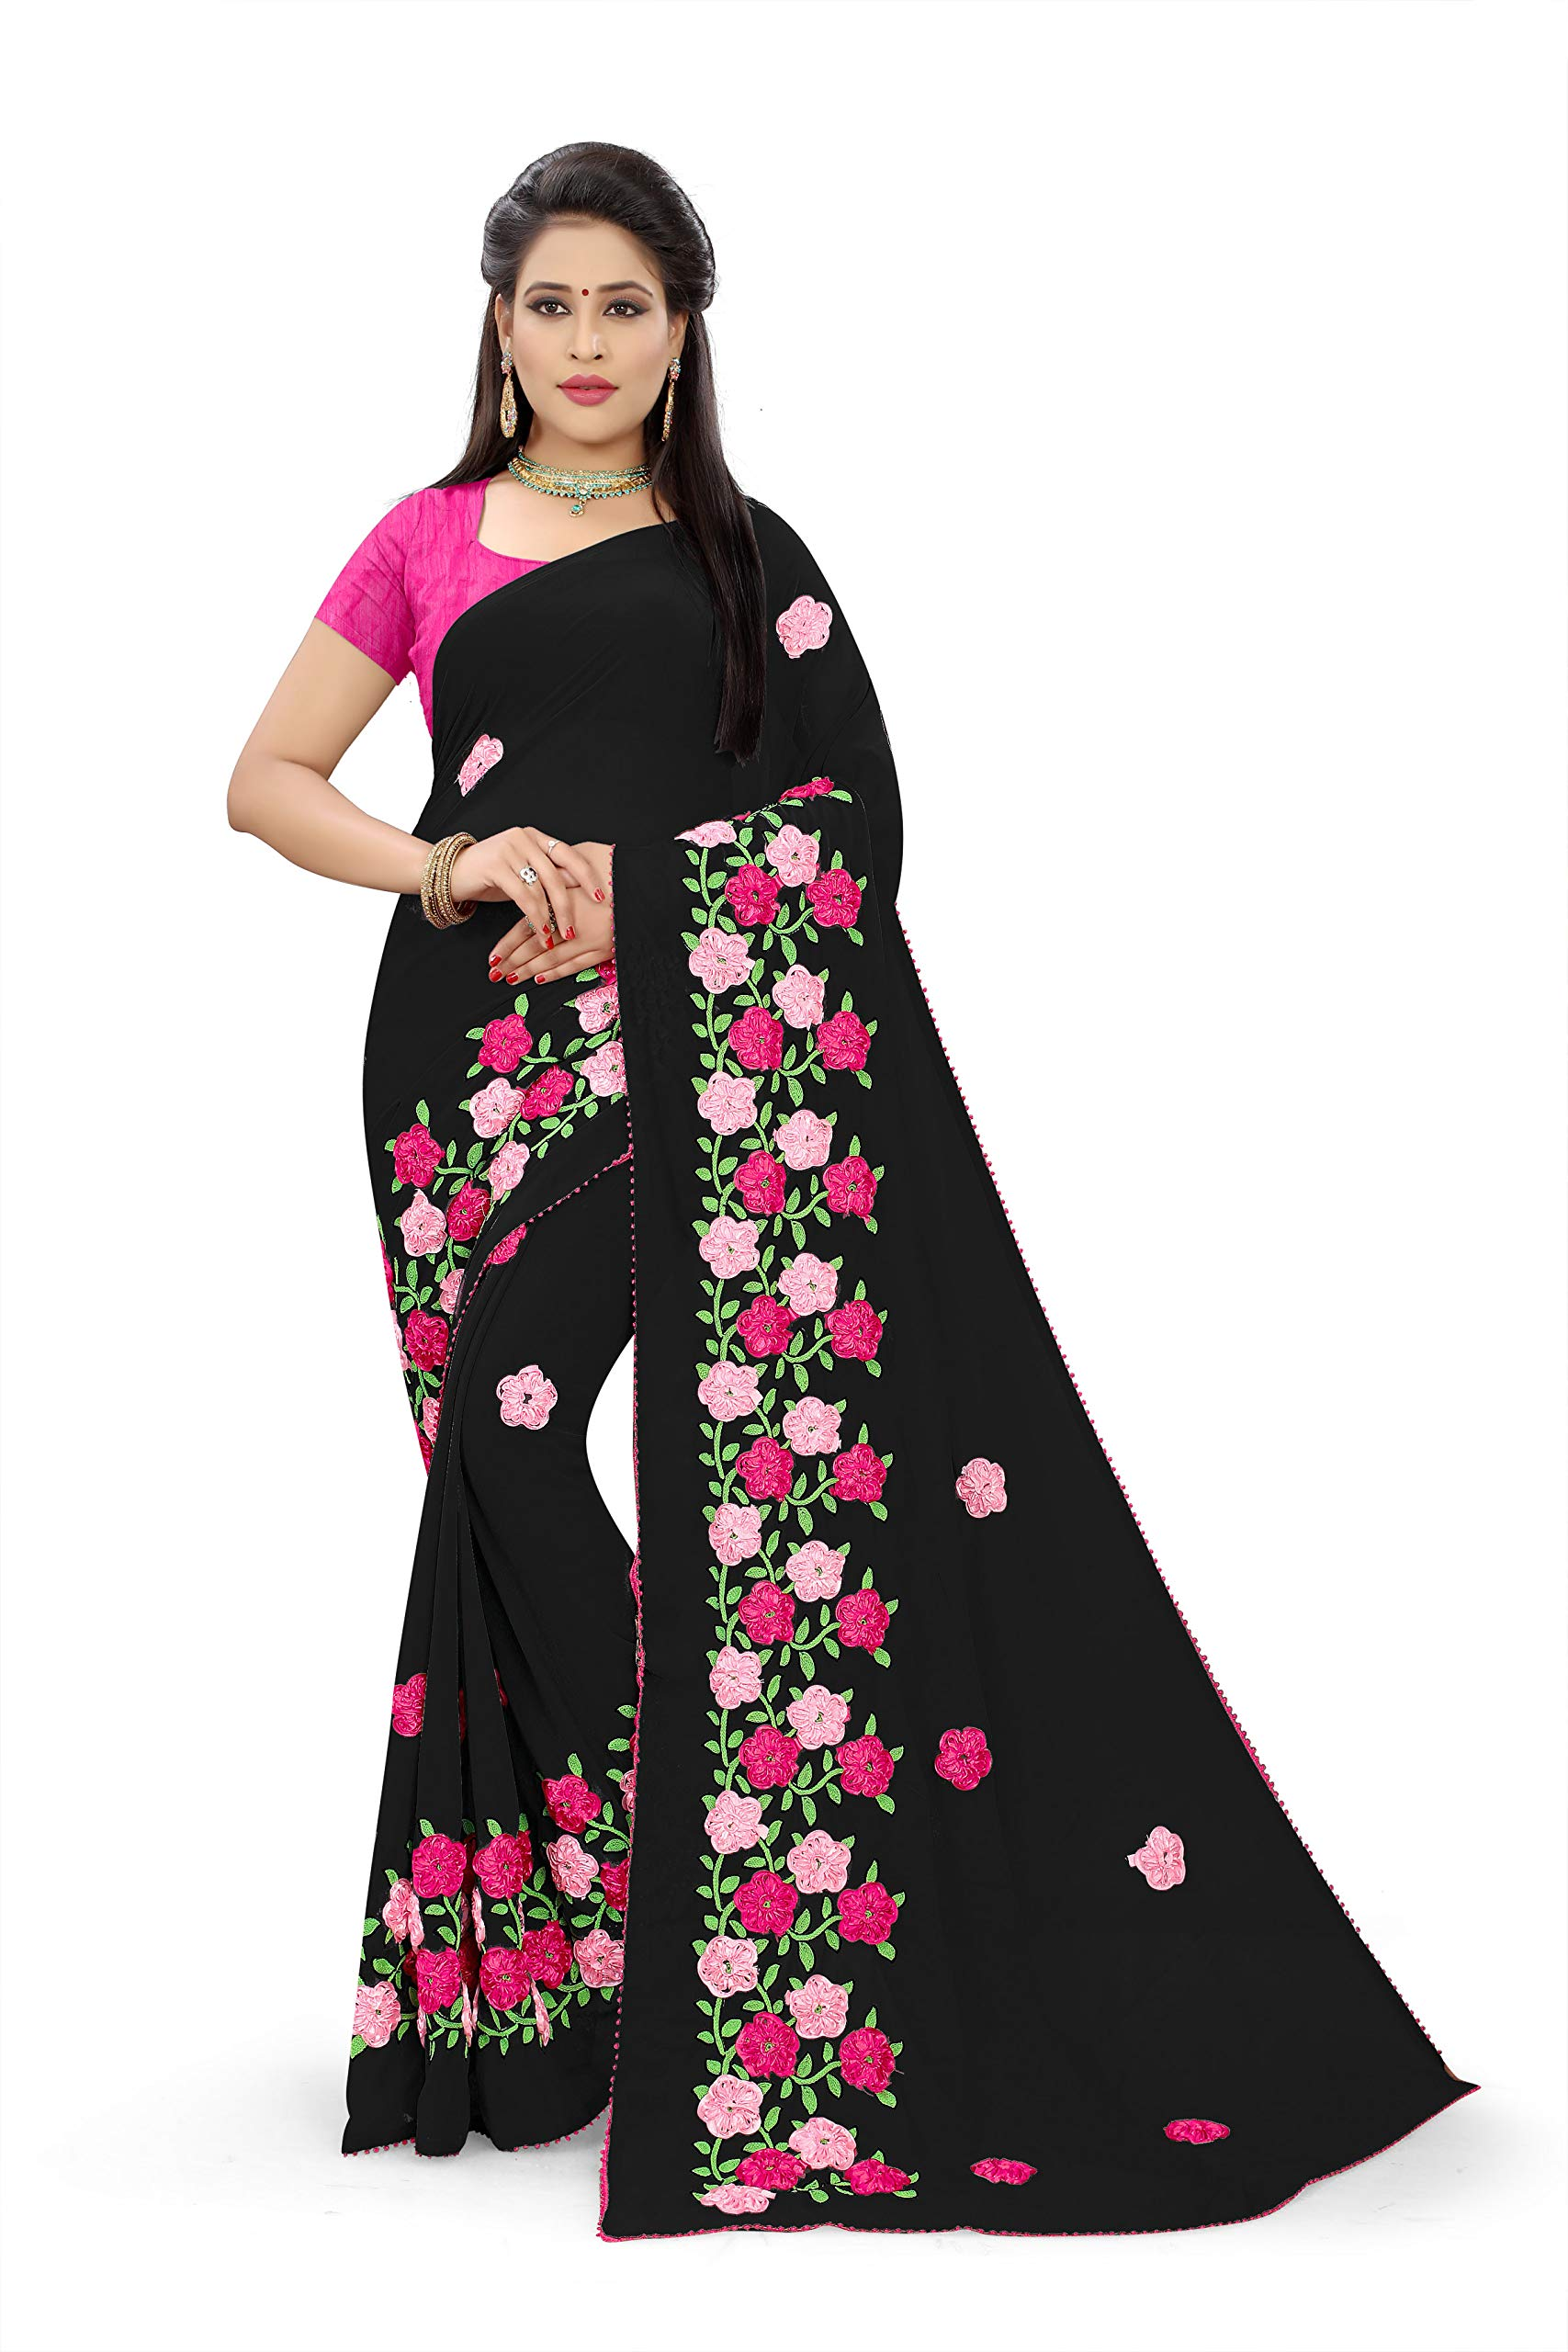 Mohit Creations FlowerWork Partywear Georgette Saree with Unstiitched Blouse Piece (Black)